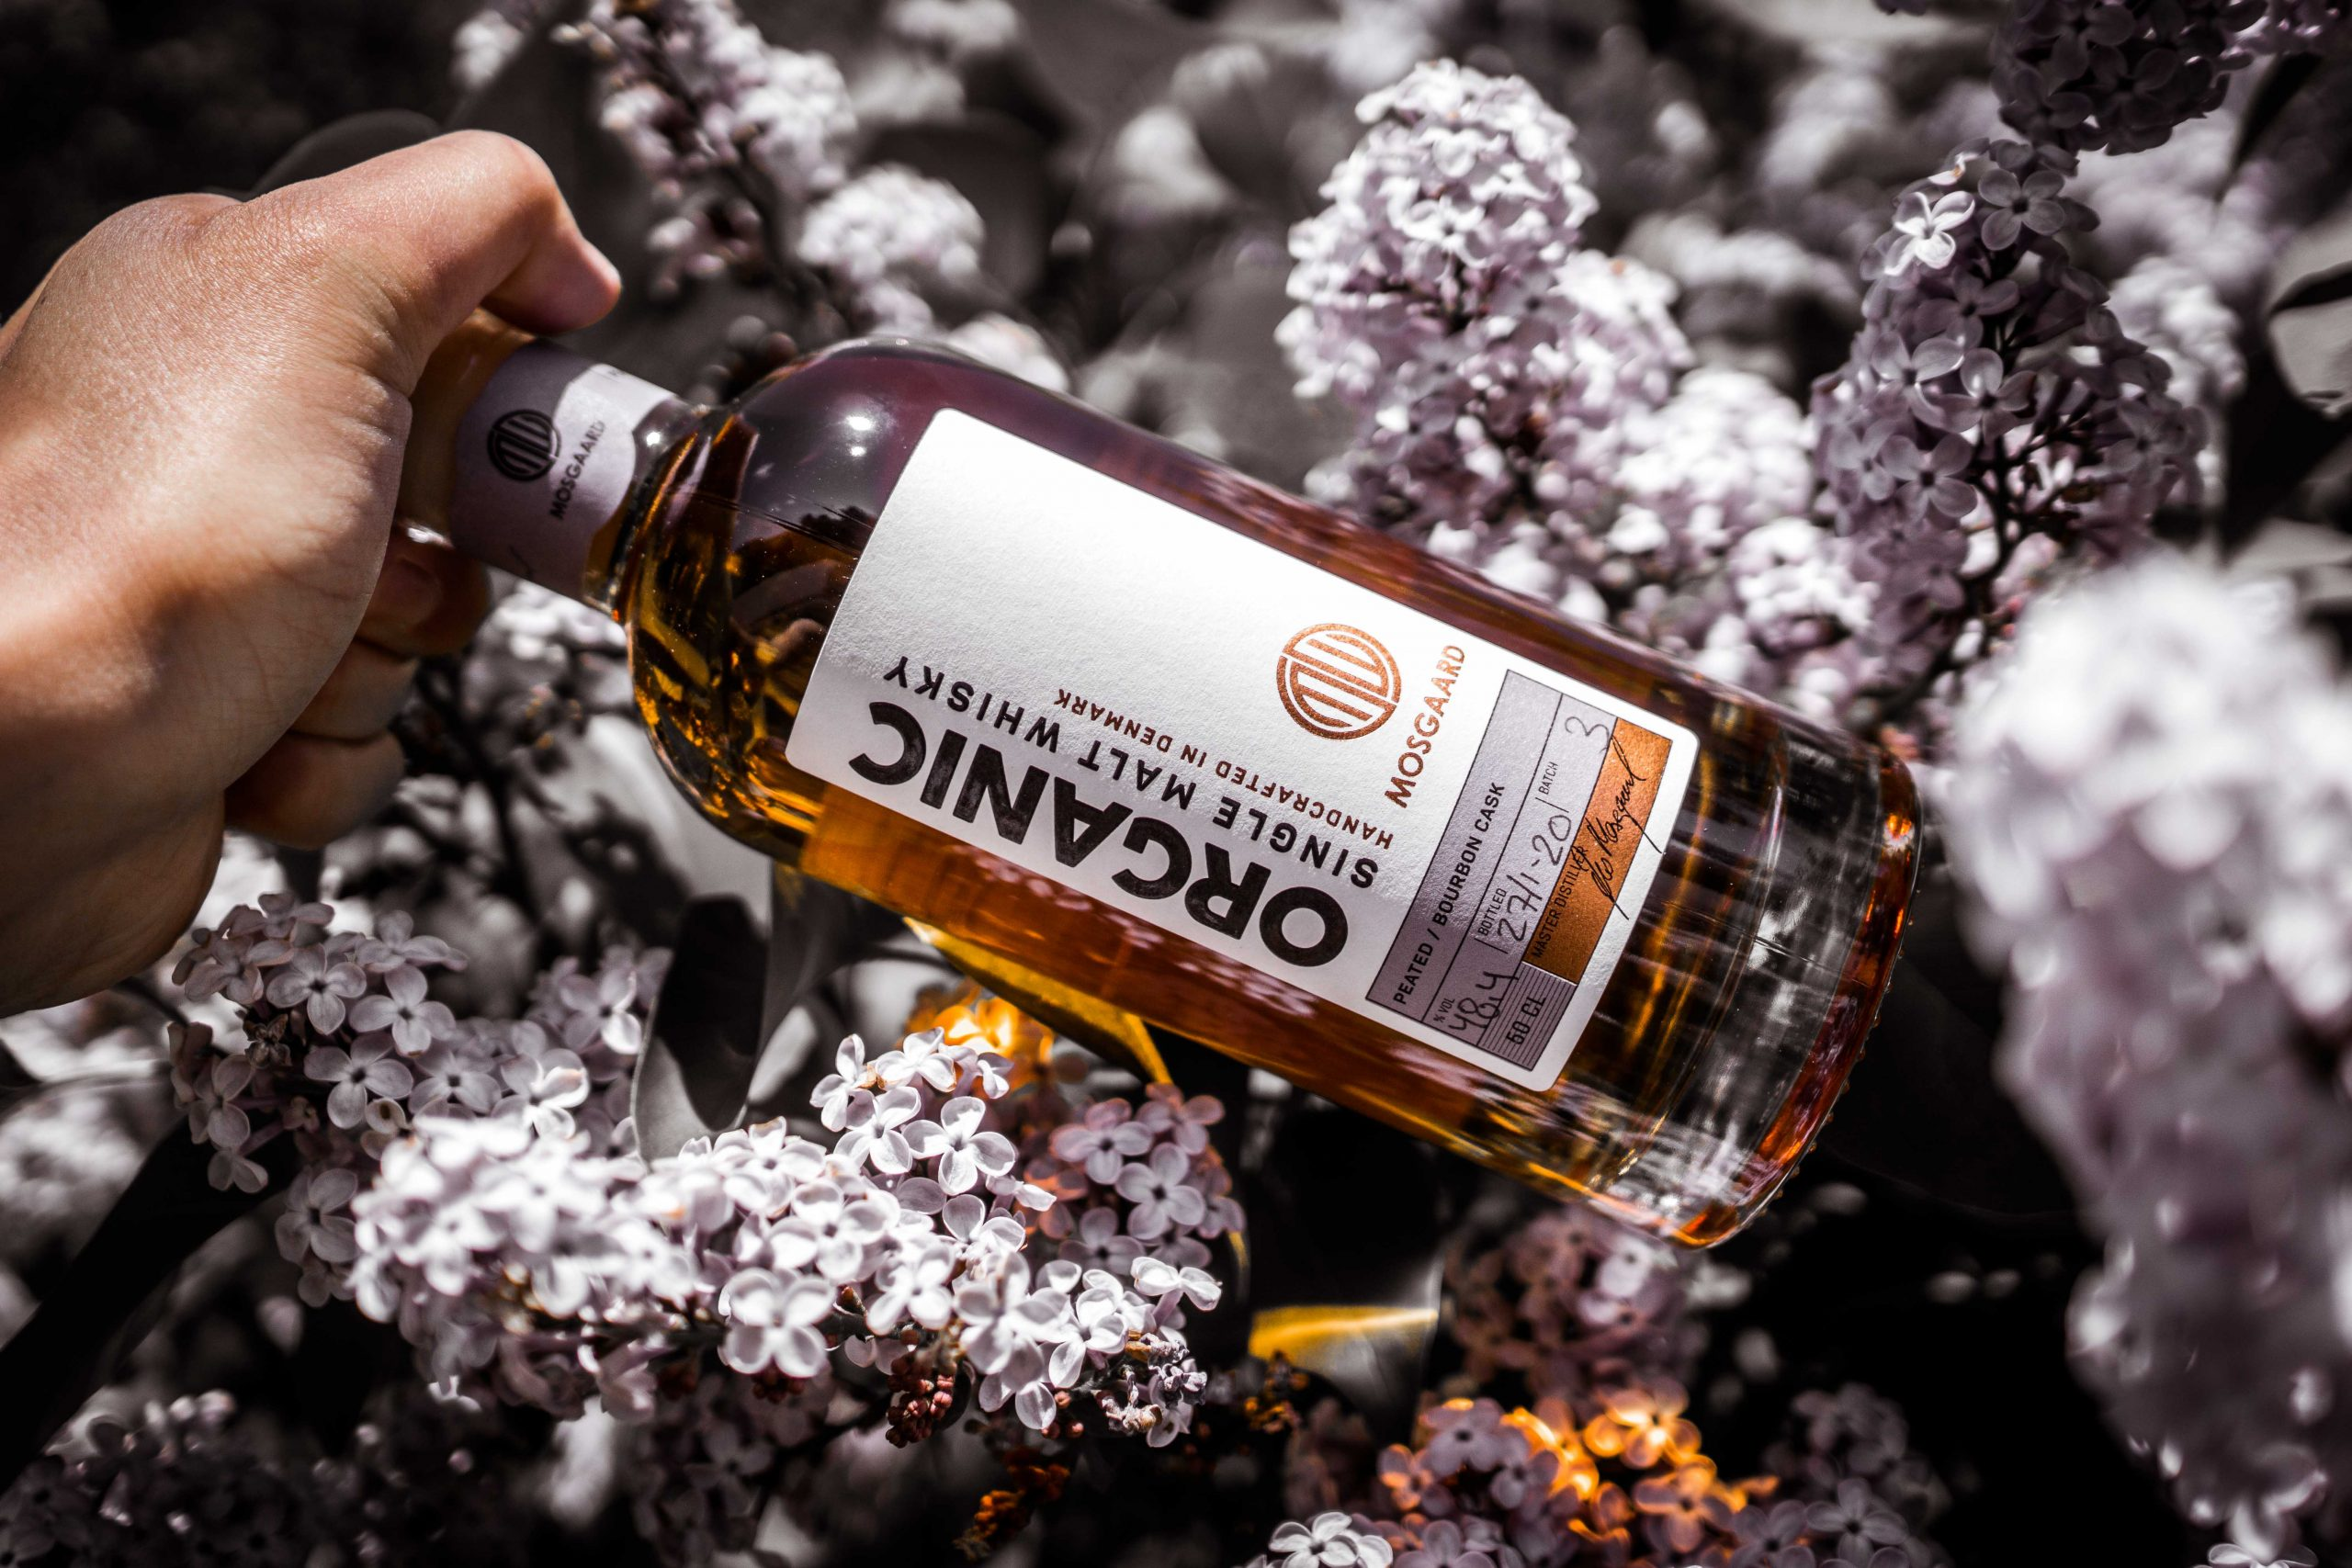 Mosgaard Organic peated whisky – bourbon cask